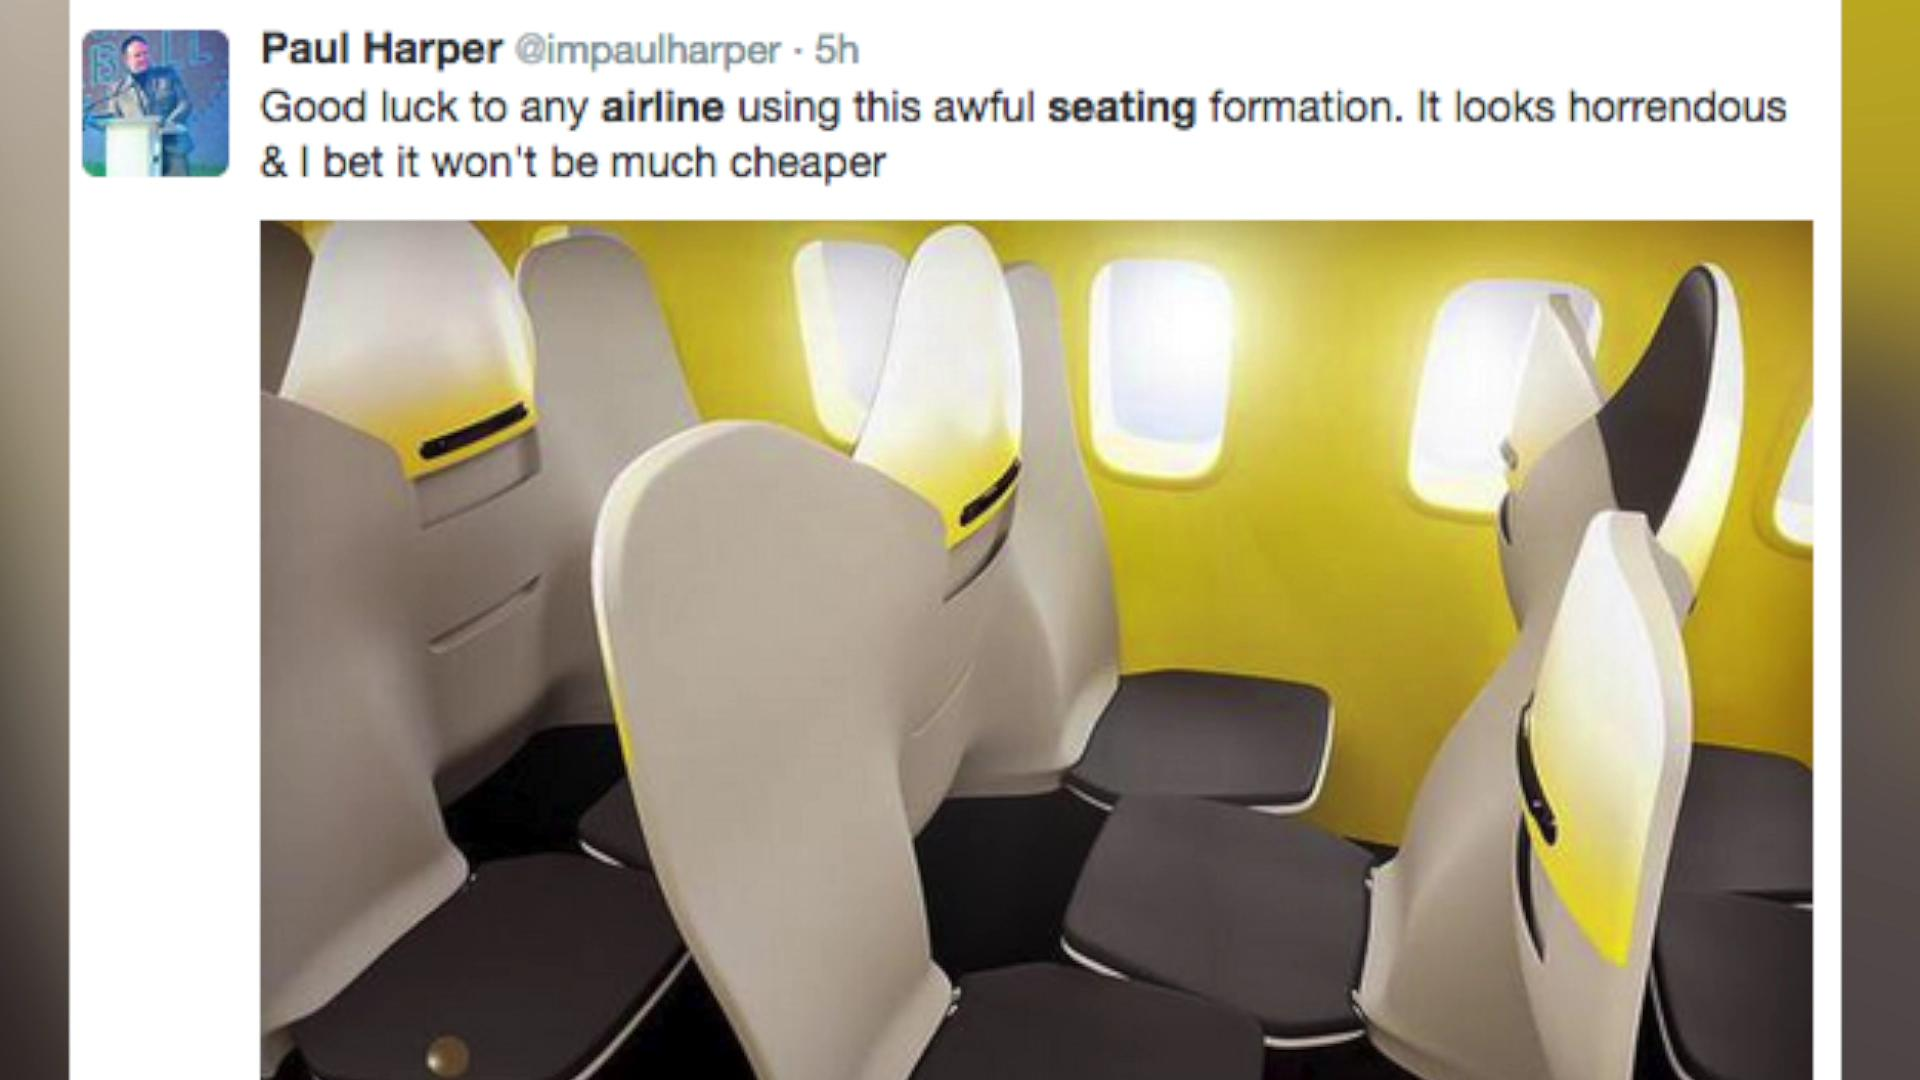 This could actually make flying in the middle seat worse!